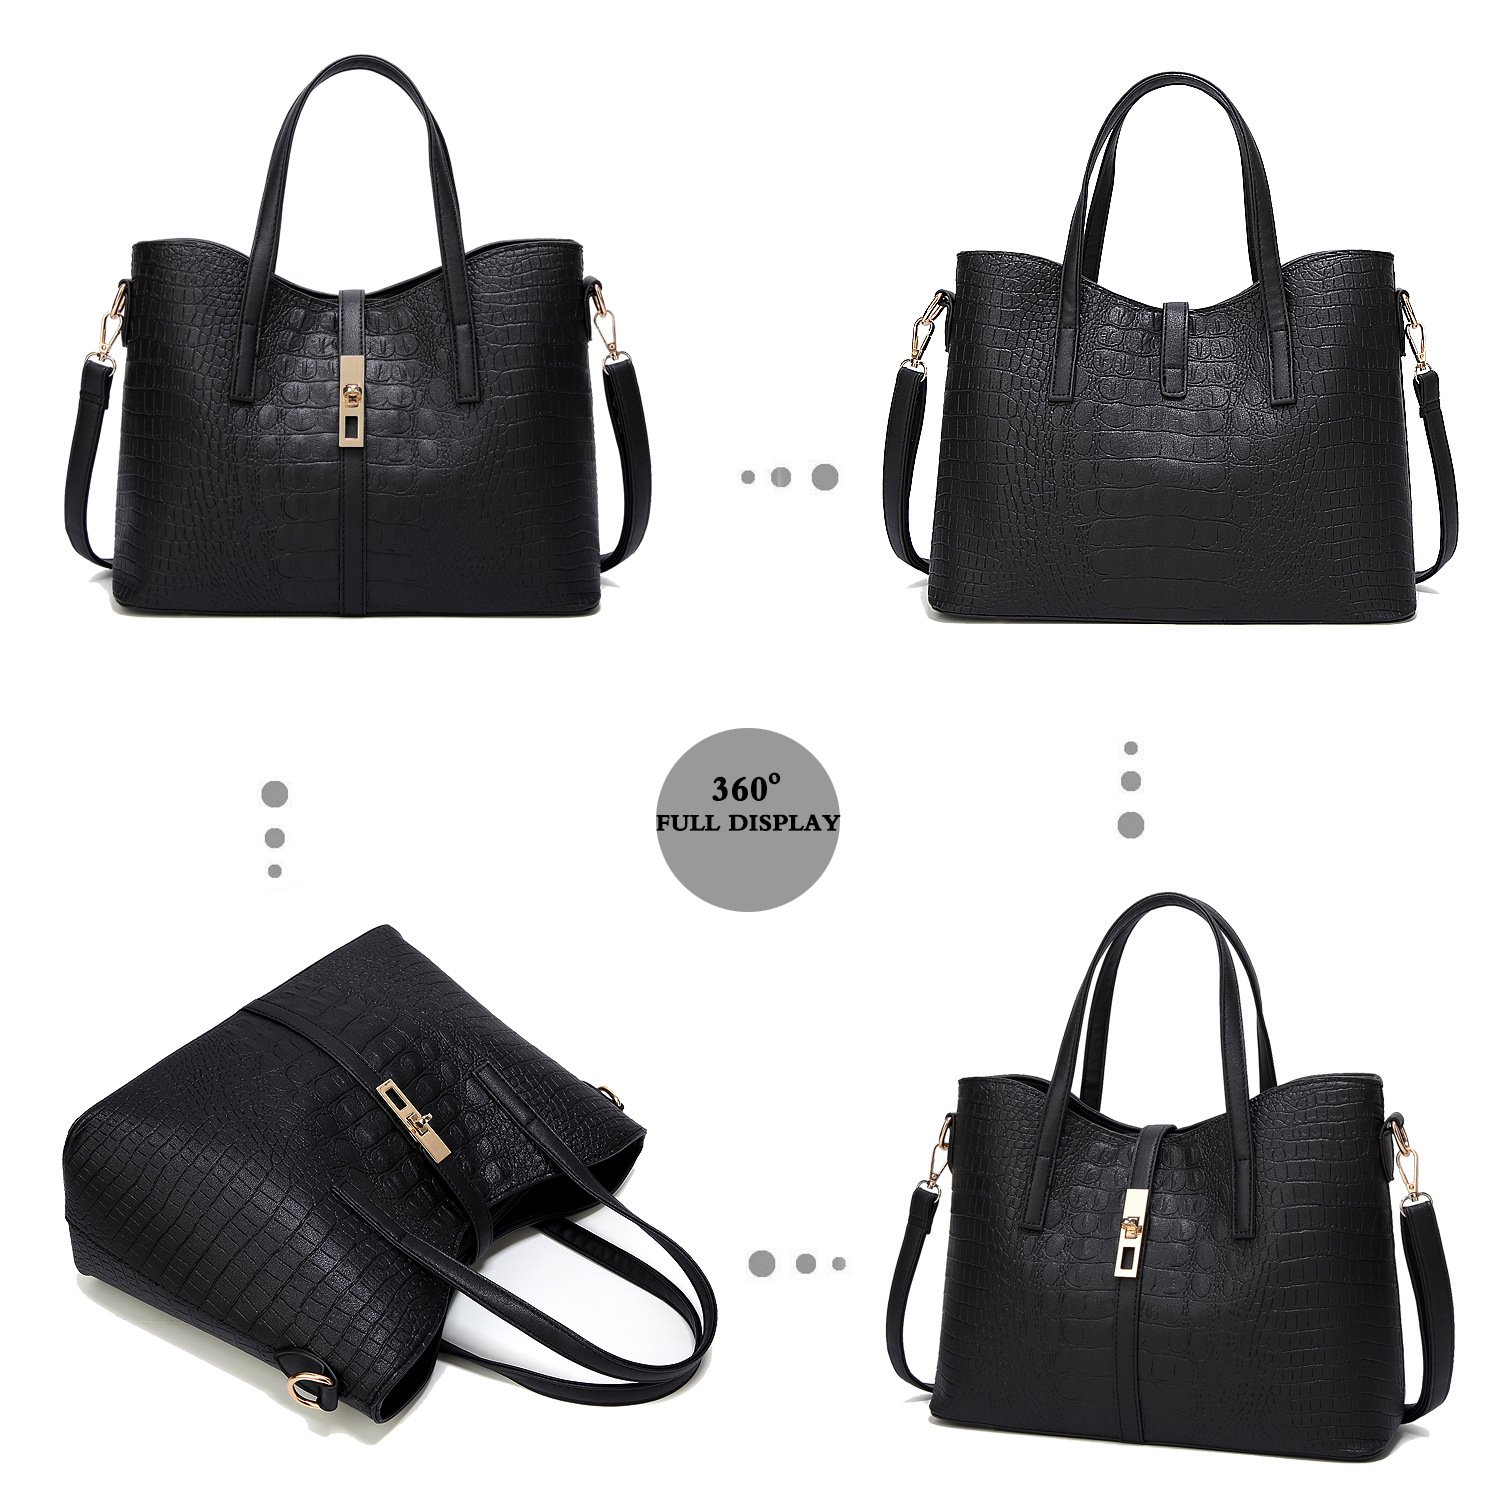 YNIQUE Satchel Purses and Handbags for Women Shoulder Tote Bags Wallets by YNIQUE (Image #5)